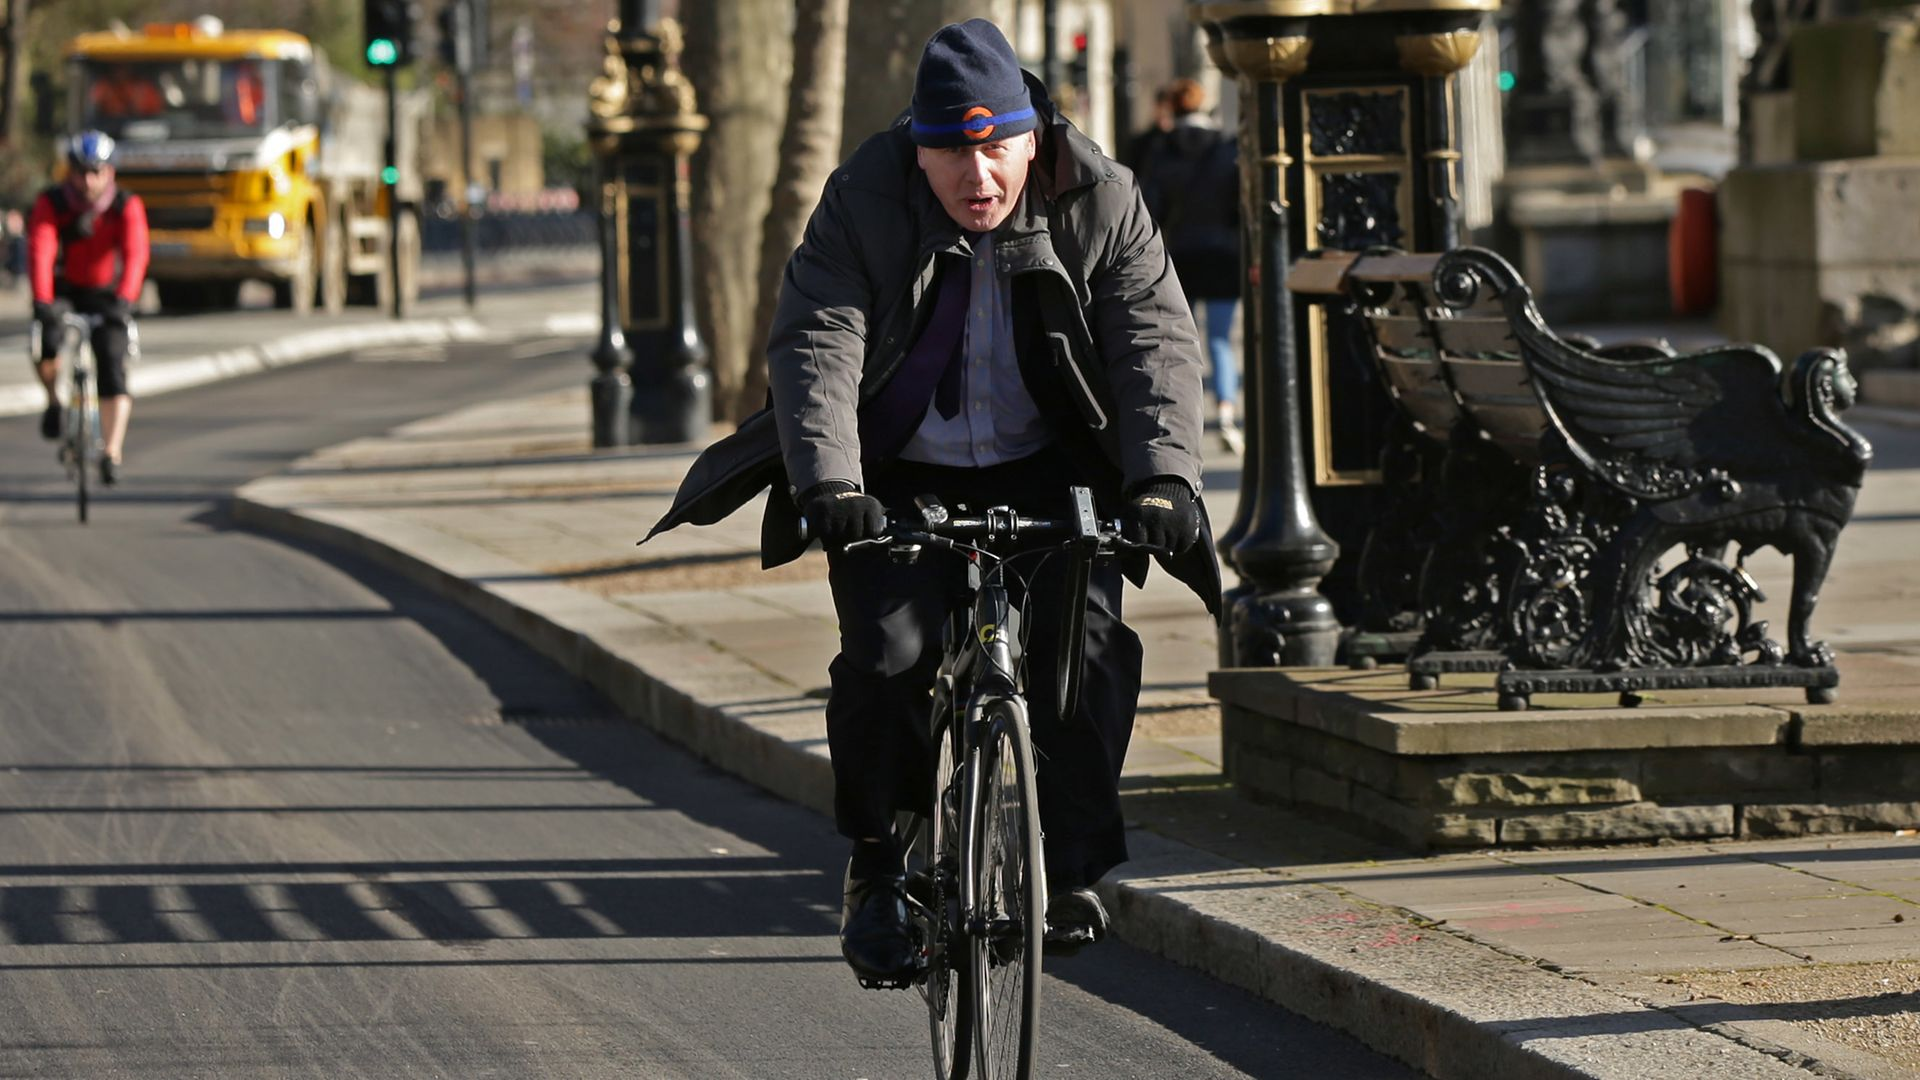 Boris Johnson on his bike in archived photographs - Credit: PA